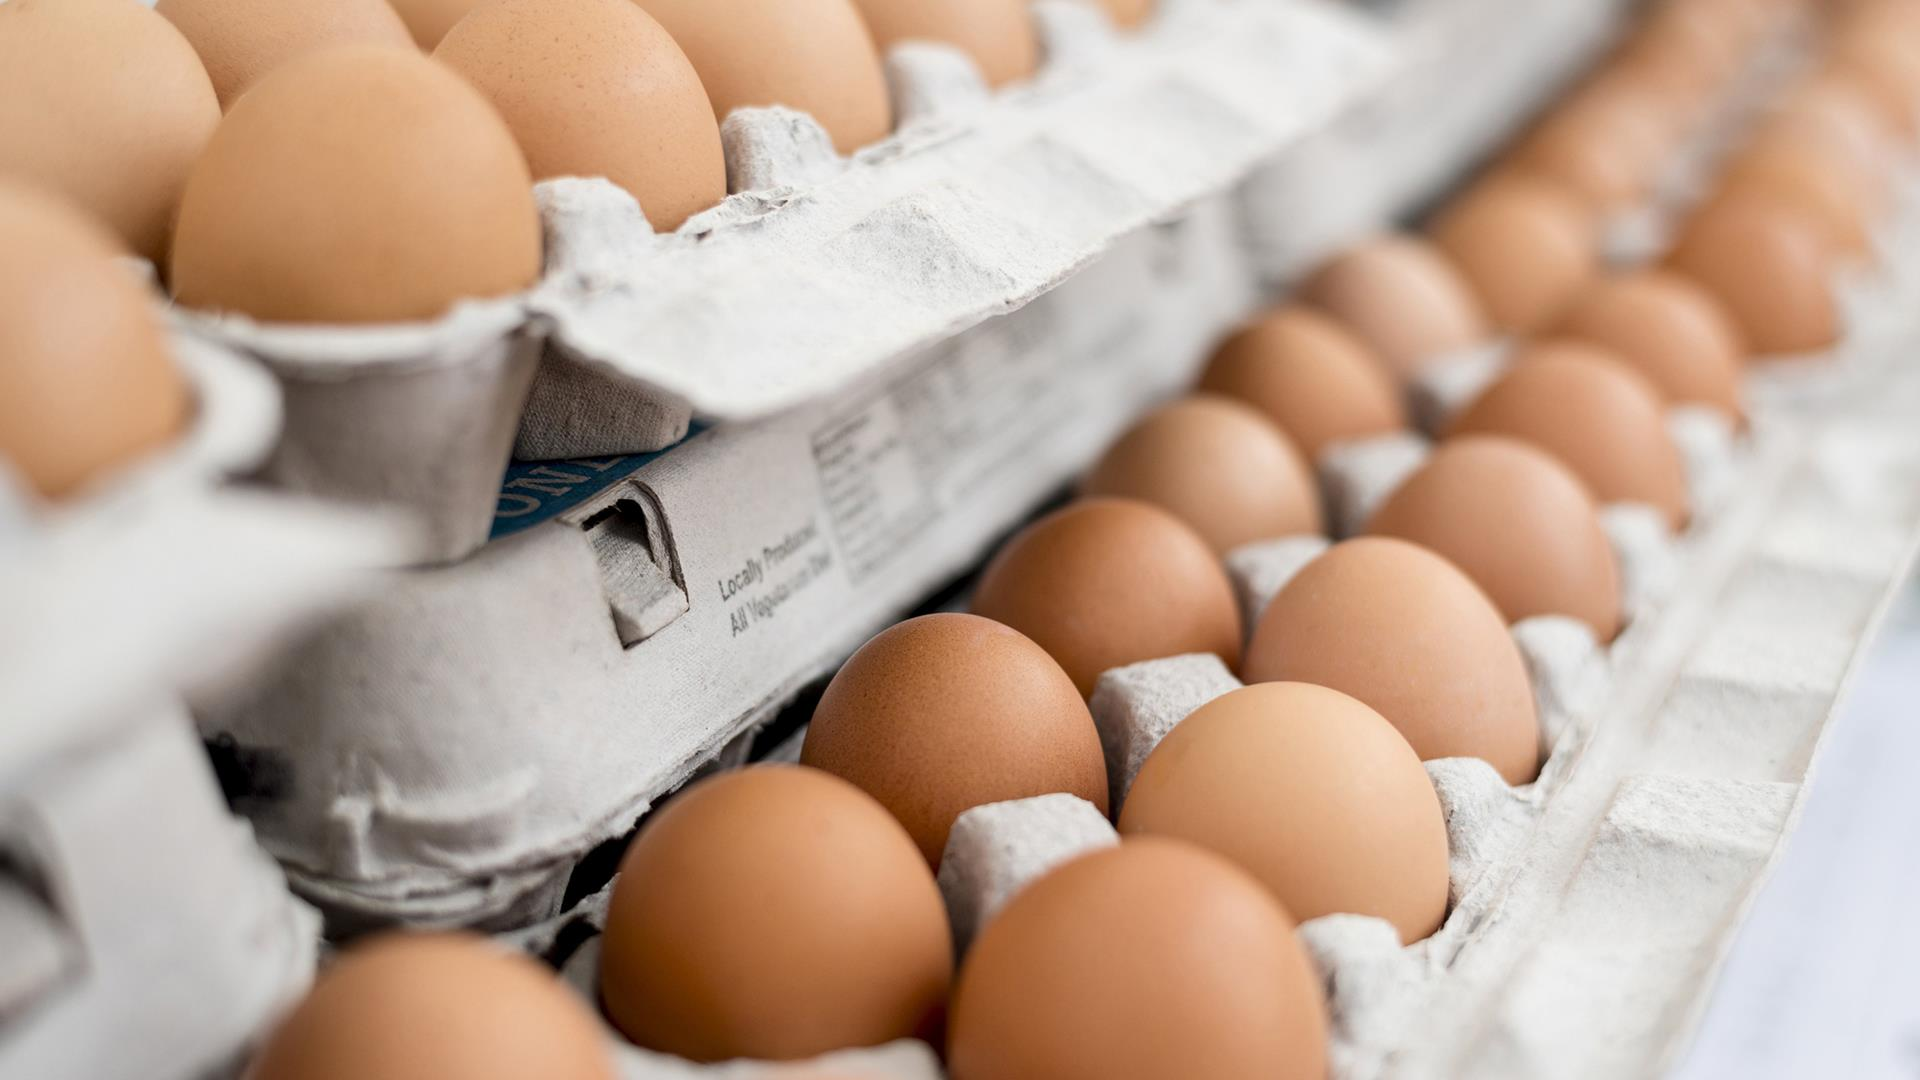 Are Eggs Bad For You Scientists Explain If Eating Eggs Every Day Is Healthy